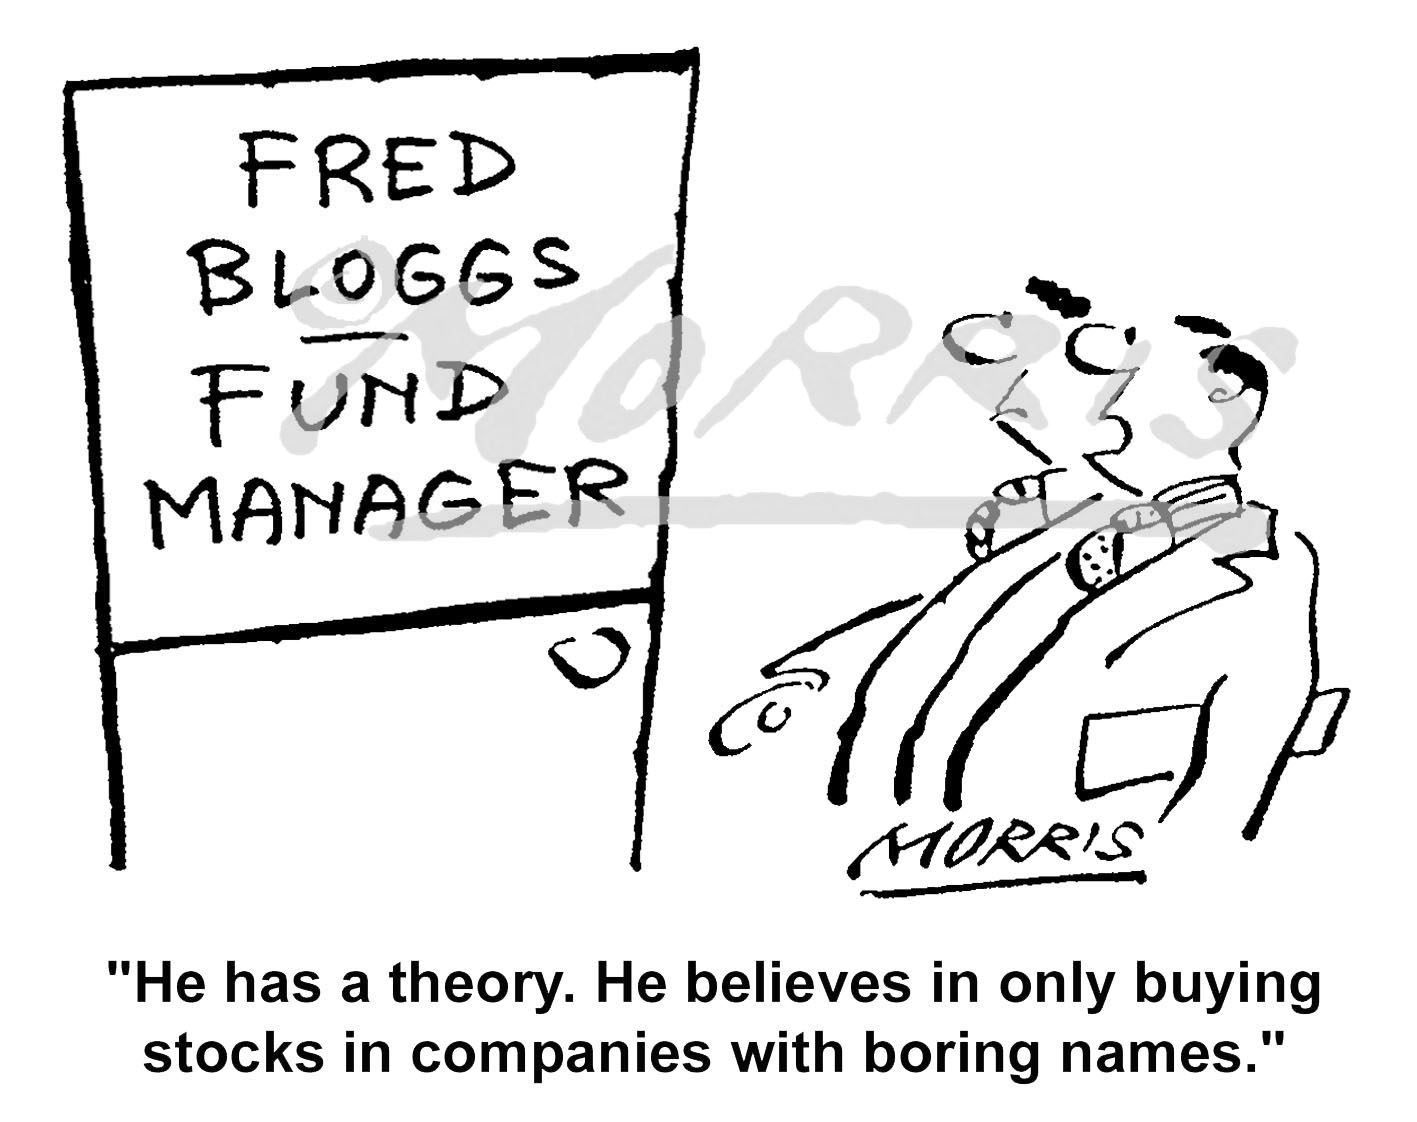 Stocks fund manager cartoon – Ref: 5145bw